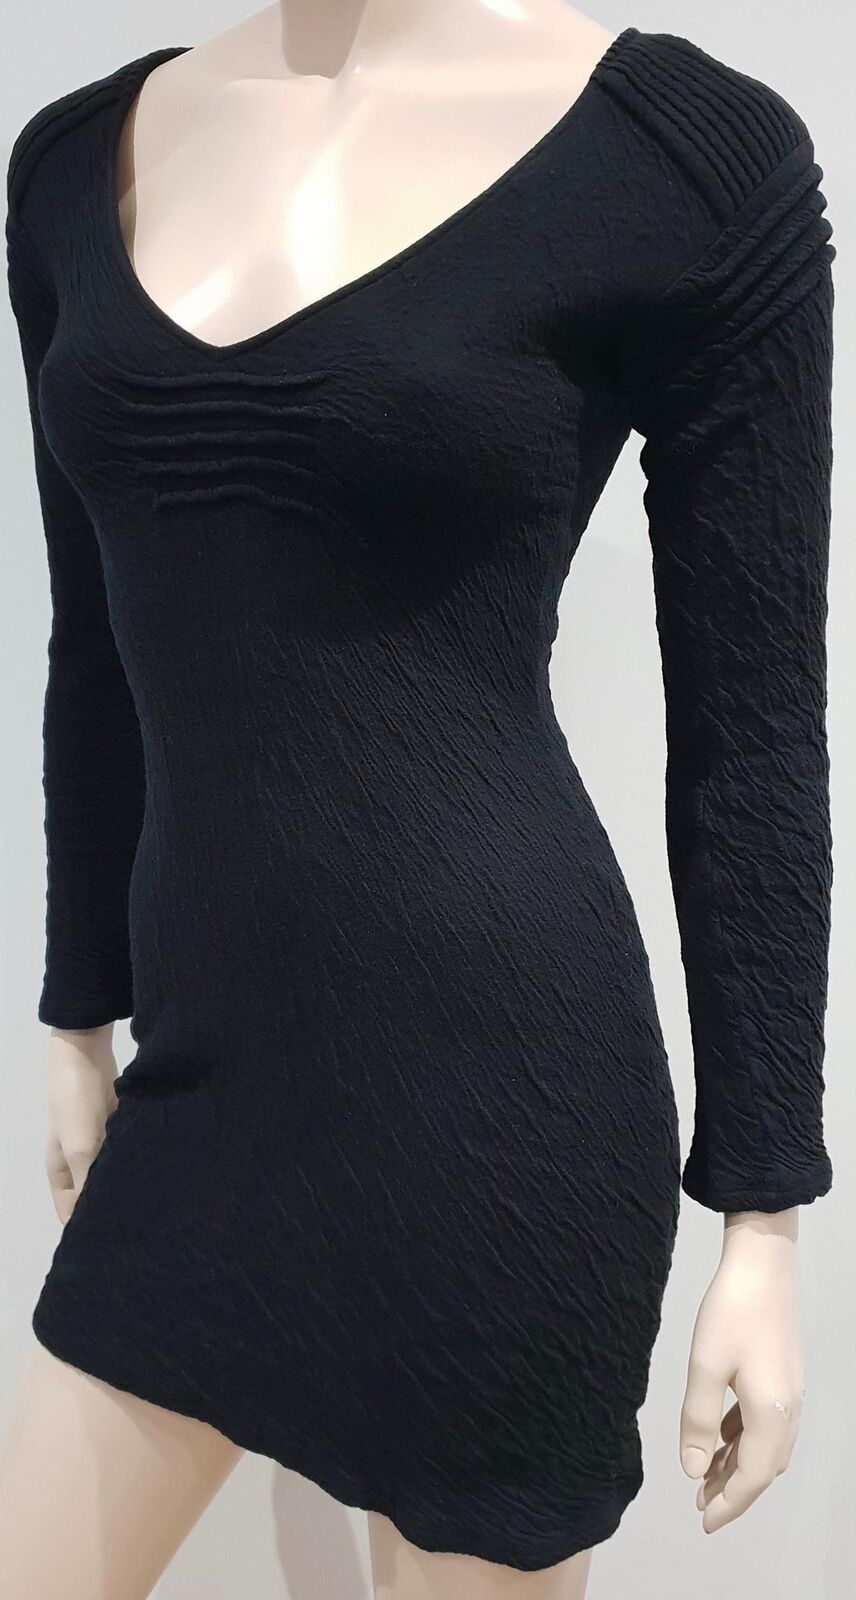 COTONE COTONE COTONE Nero ANNE FONTAINE jeseywear Stretch Bodycon Mini Abito 38 UK8 89d36a